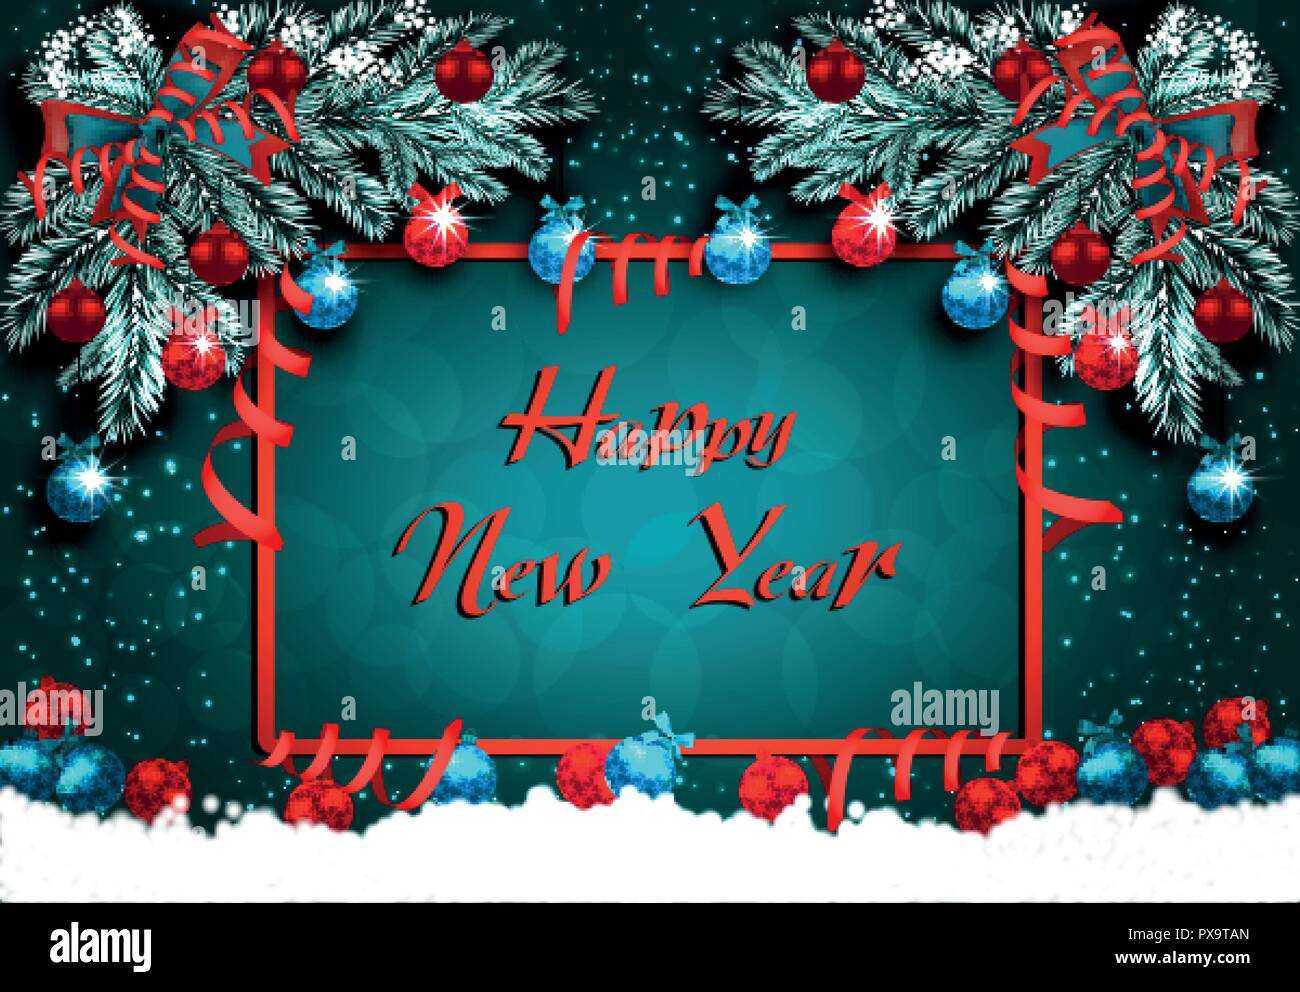 Happy New Year Greeting Card With Decorations On The Green